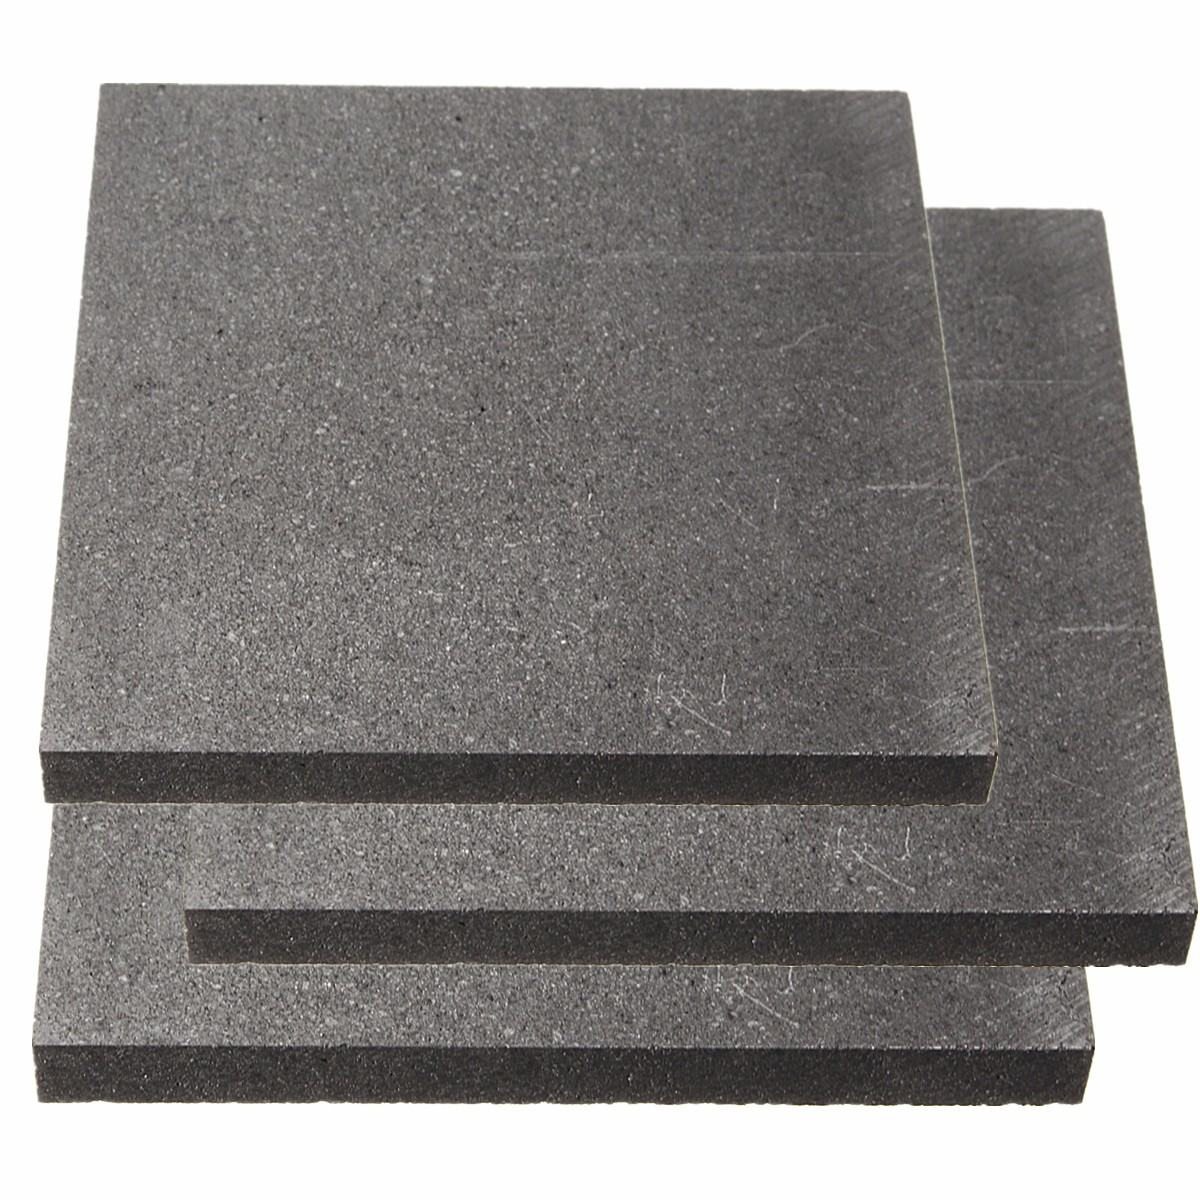 100x100x10mm High Purity 99.9% Graphite Block Electrode Rectangle Plate Blank Sheet